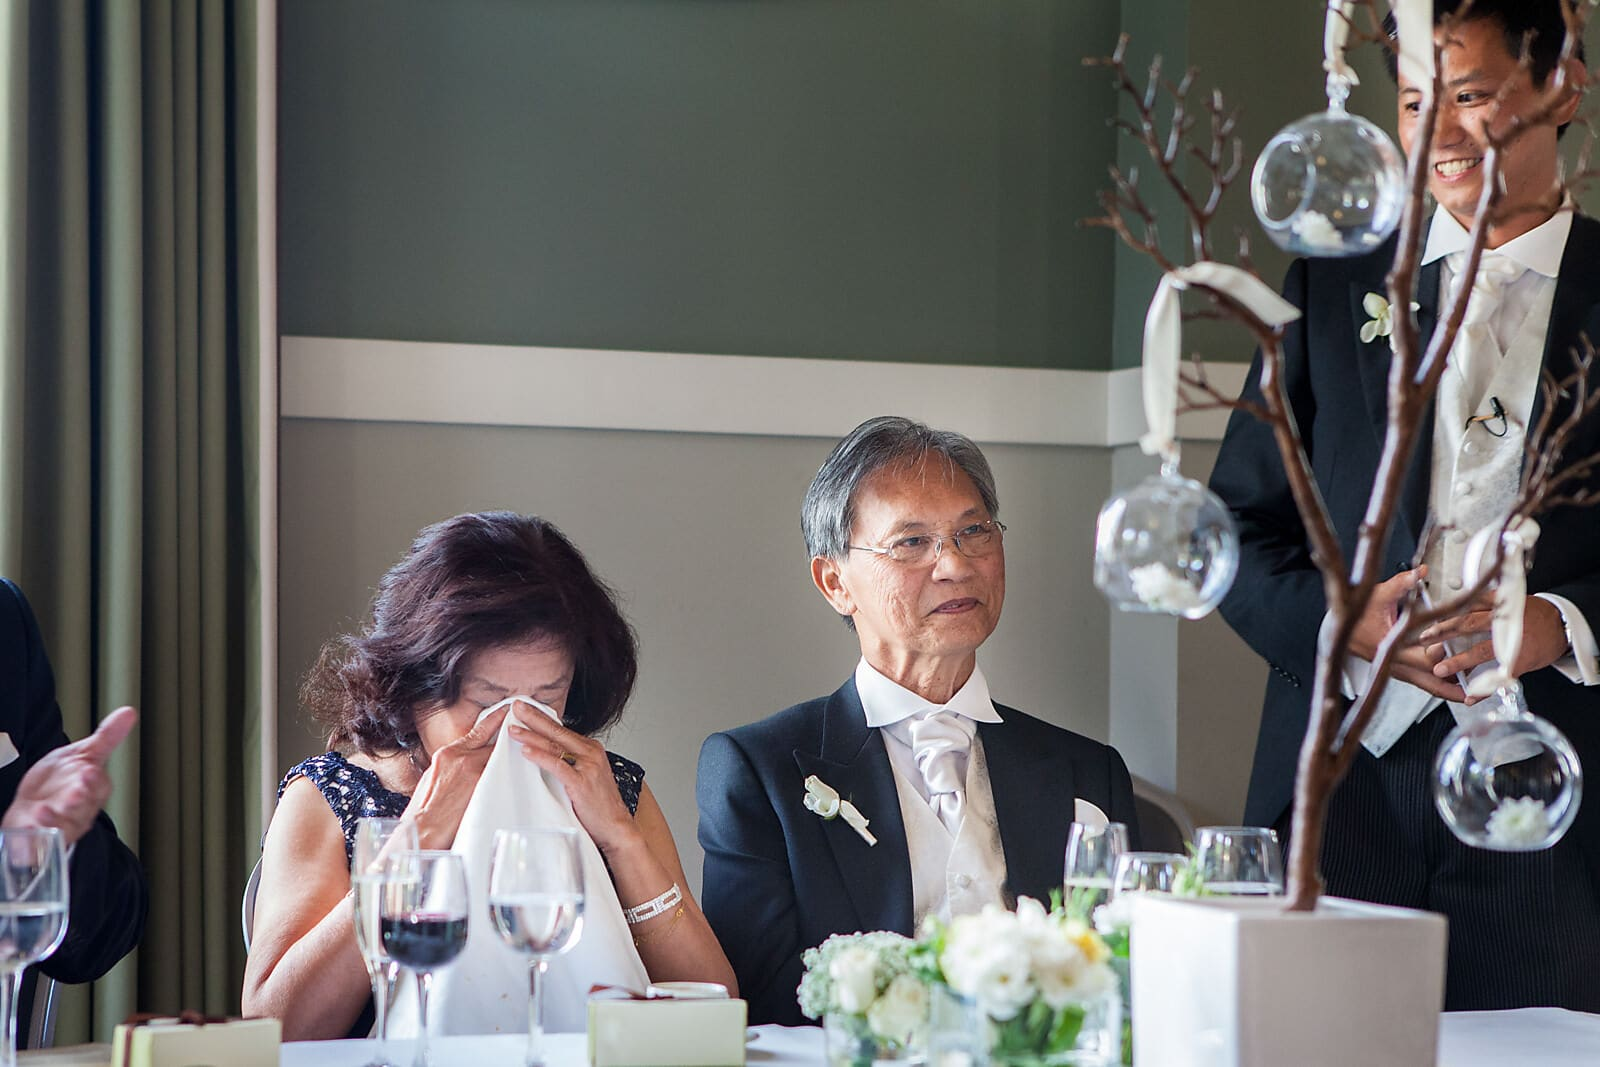 Grooms mum cries at his wedding speech